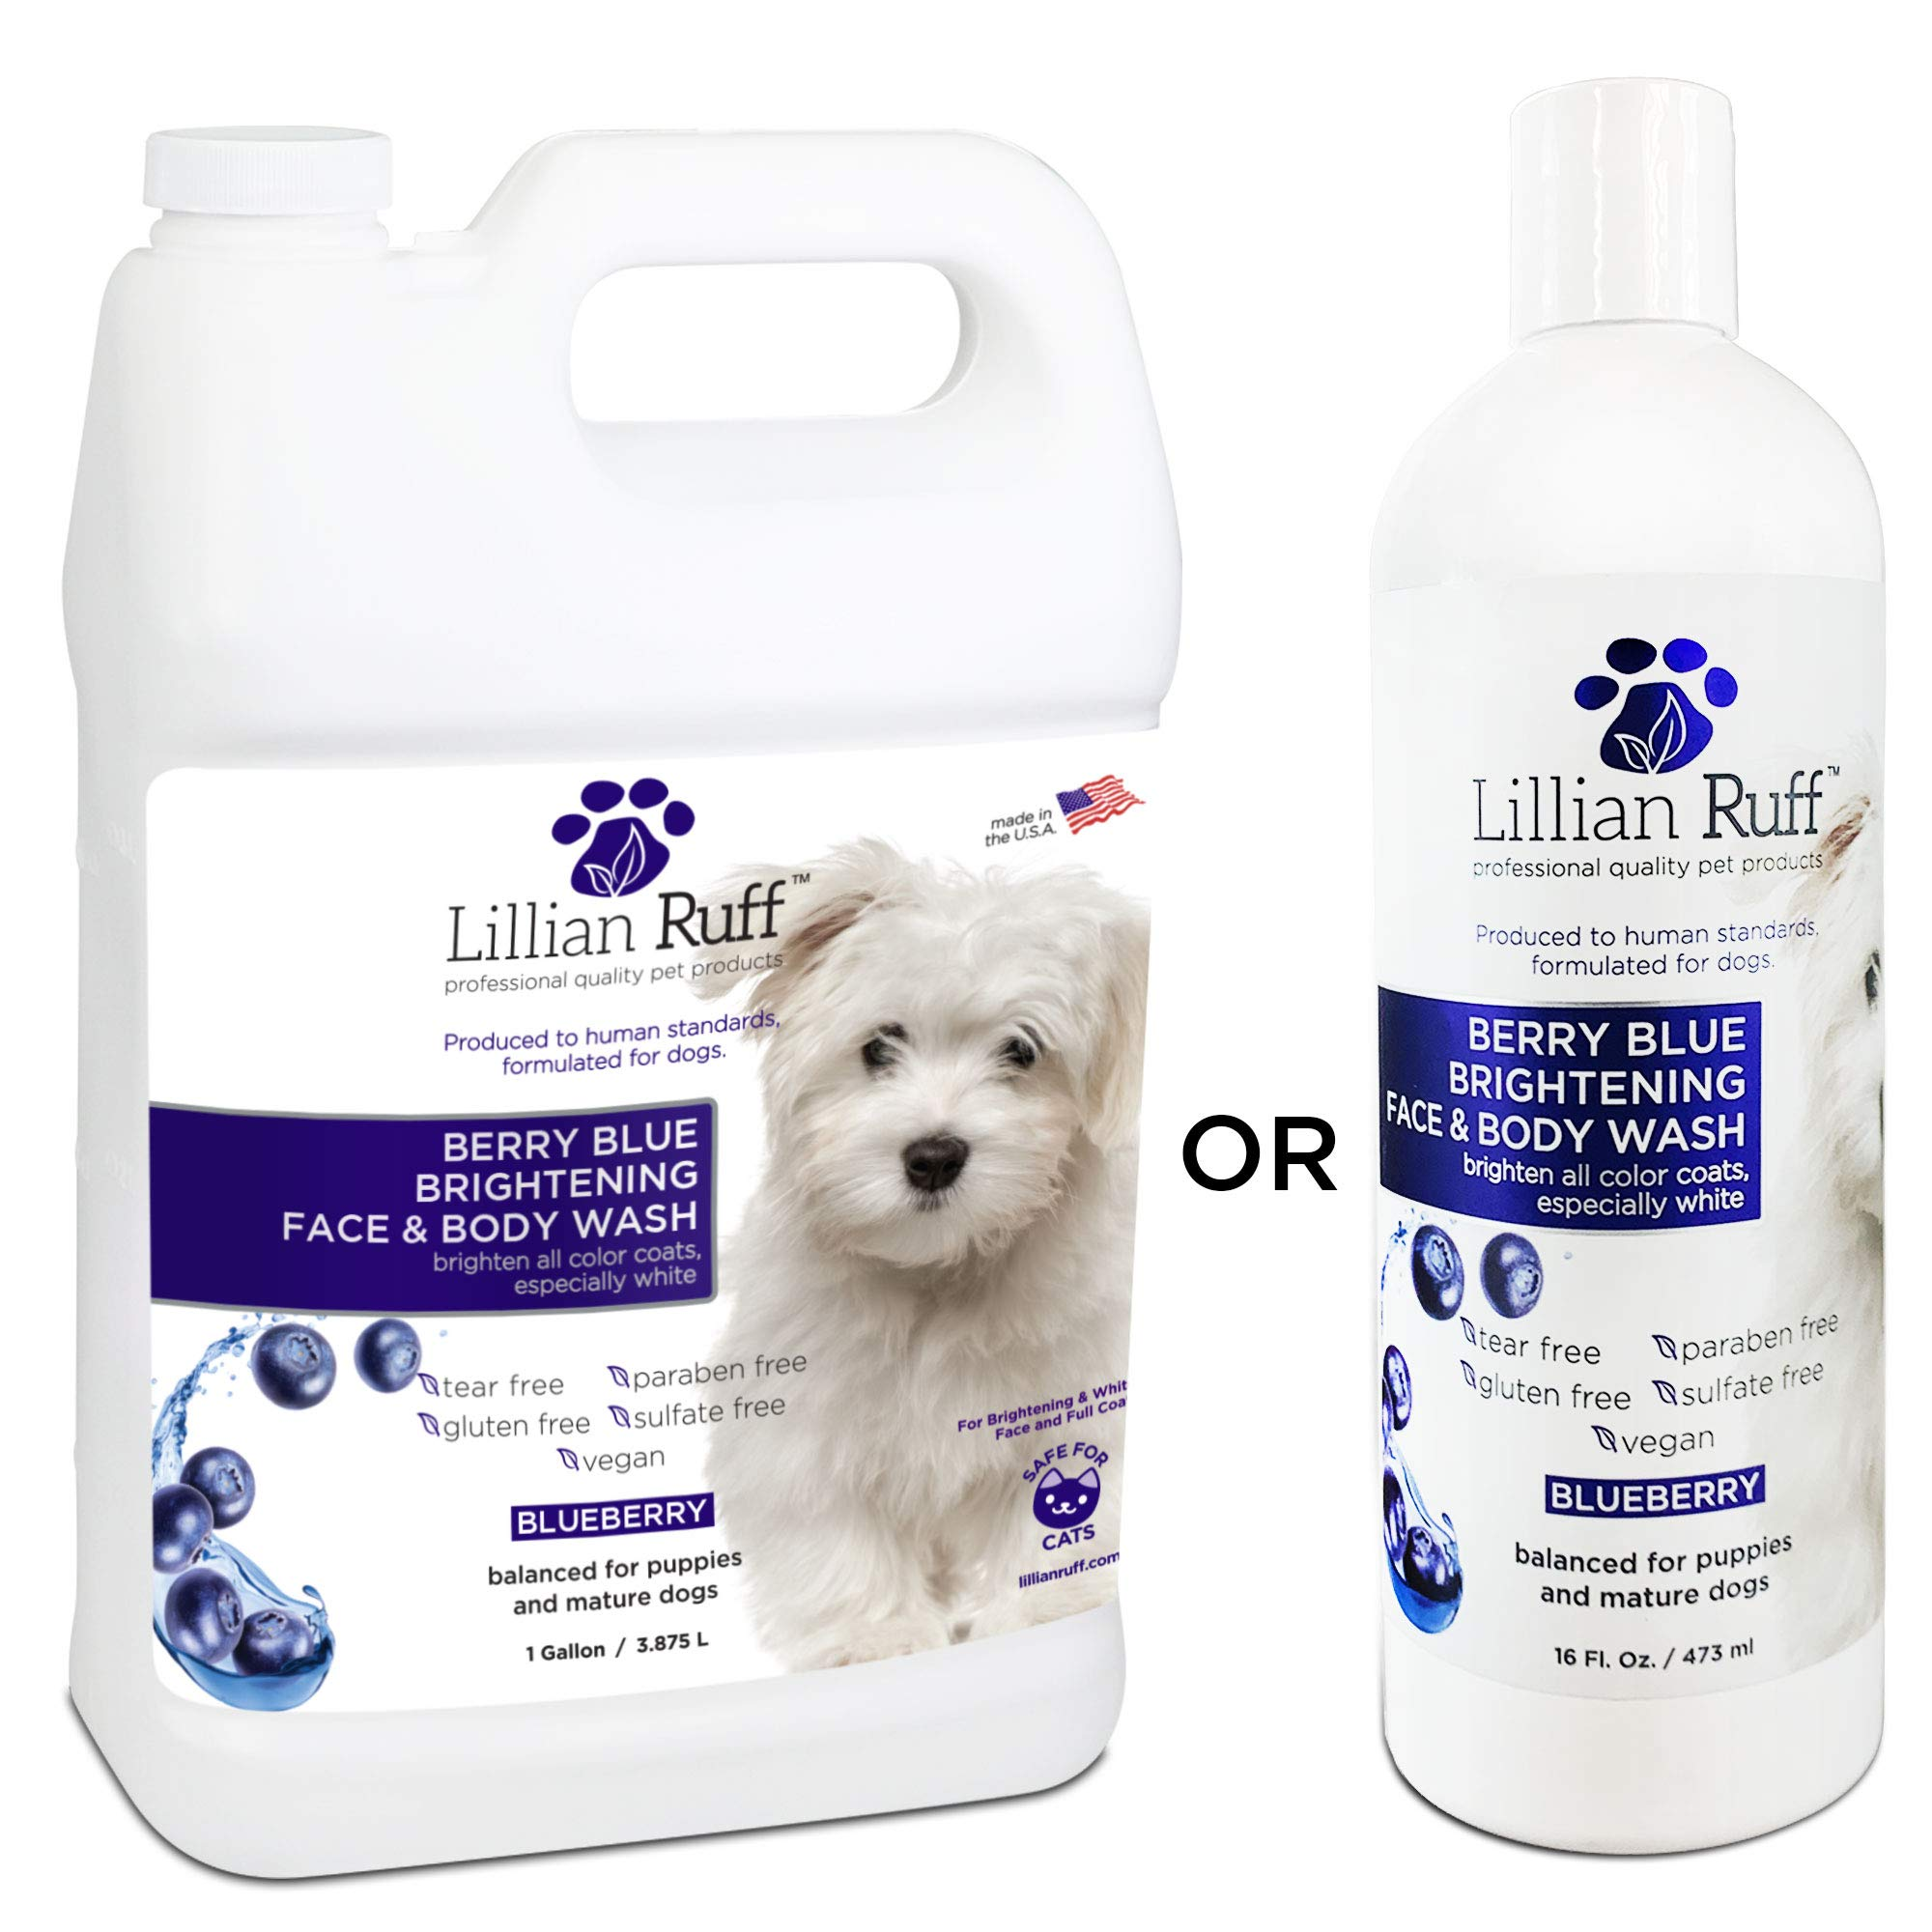 Lillian Ruff Berry Blue Brightening Face and Body Wash for Dogs and Cats - Tear Free Blueberry Shampoo - Remove Tear Stains, Hydrate Dry Itchy Skin, Add Shine & Luster to Coats - Made in USA (Gallon)